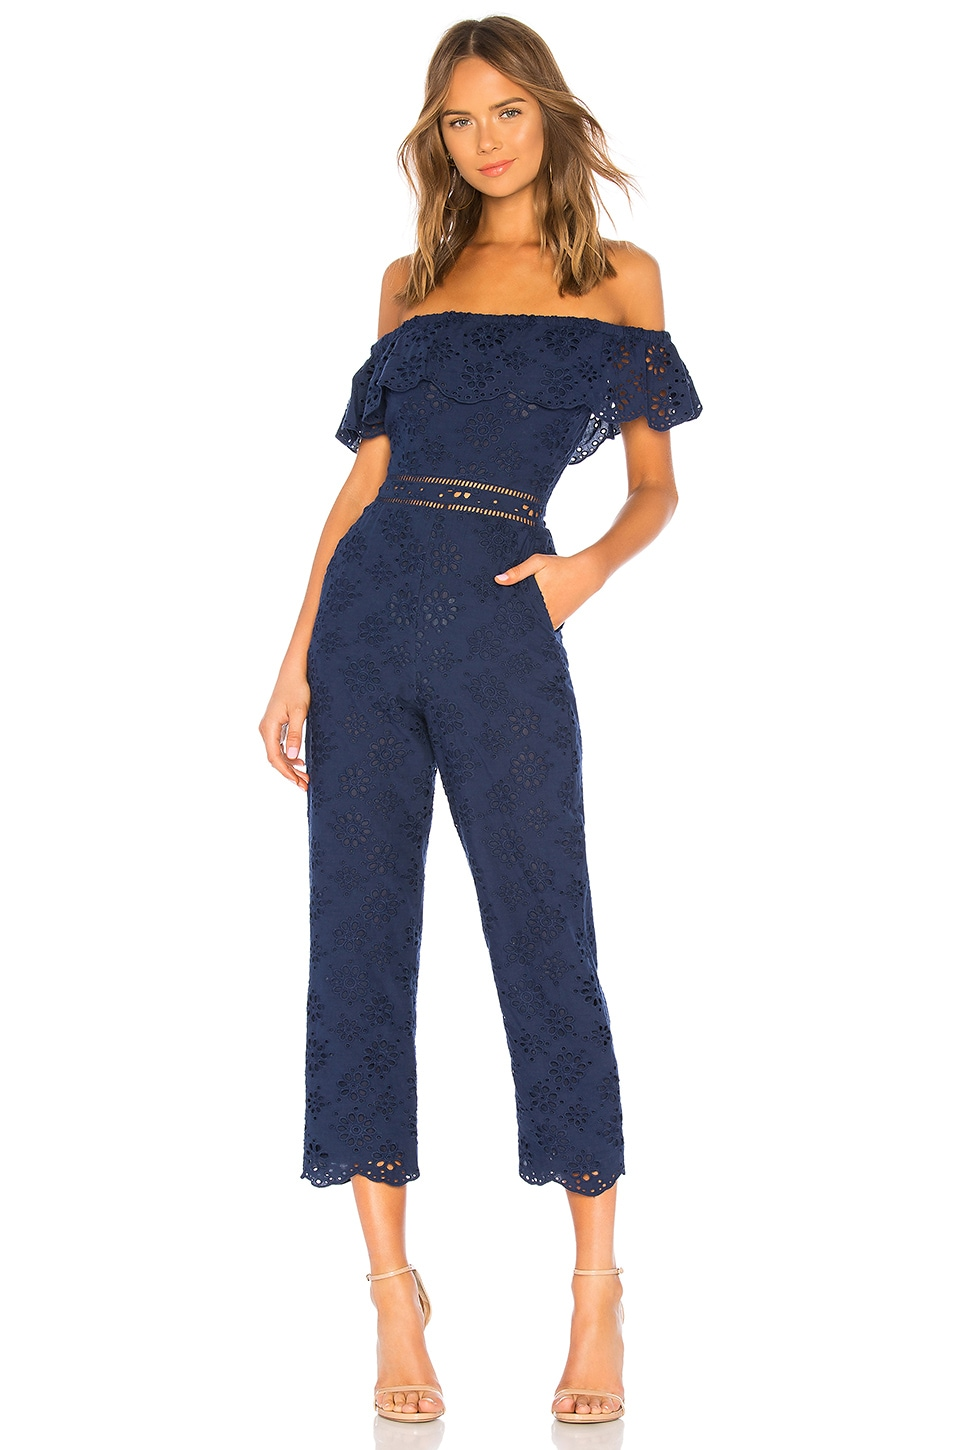 Lovers + Friends Naya Jumpsuit in Deep Navy